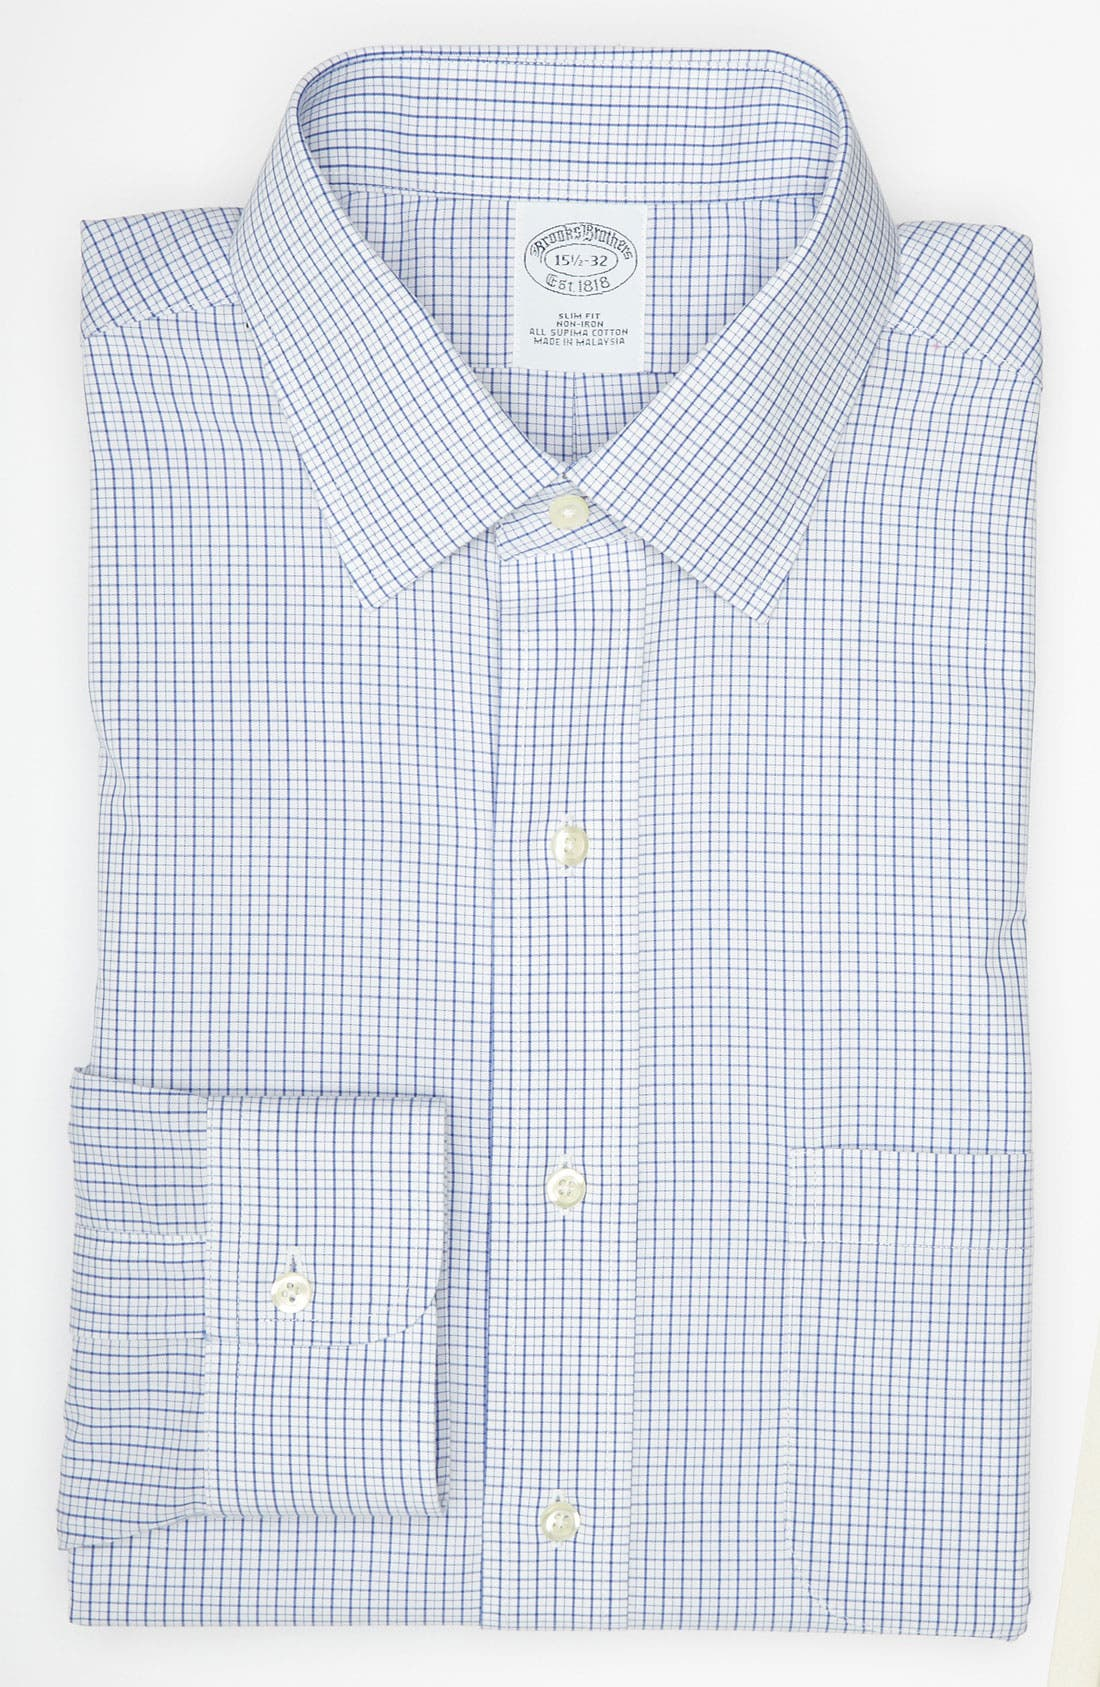 Alternate Image 1 Selected - Brooks Brothers Slim Fit Non-Iron Dress Shirt